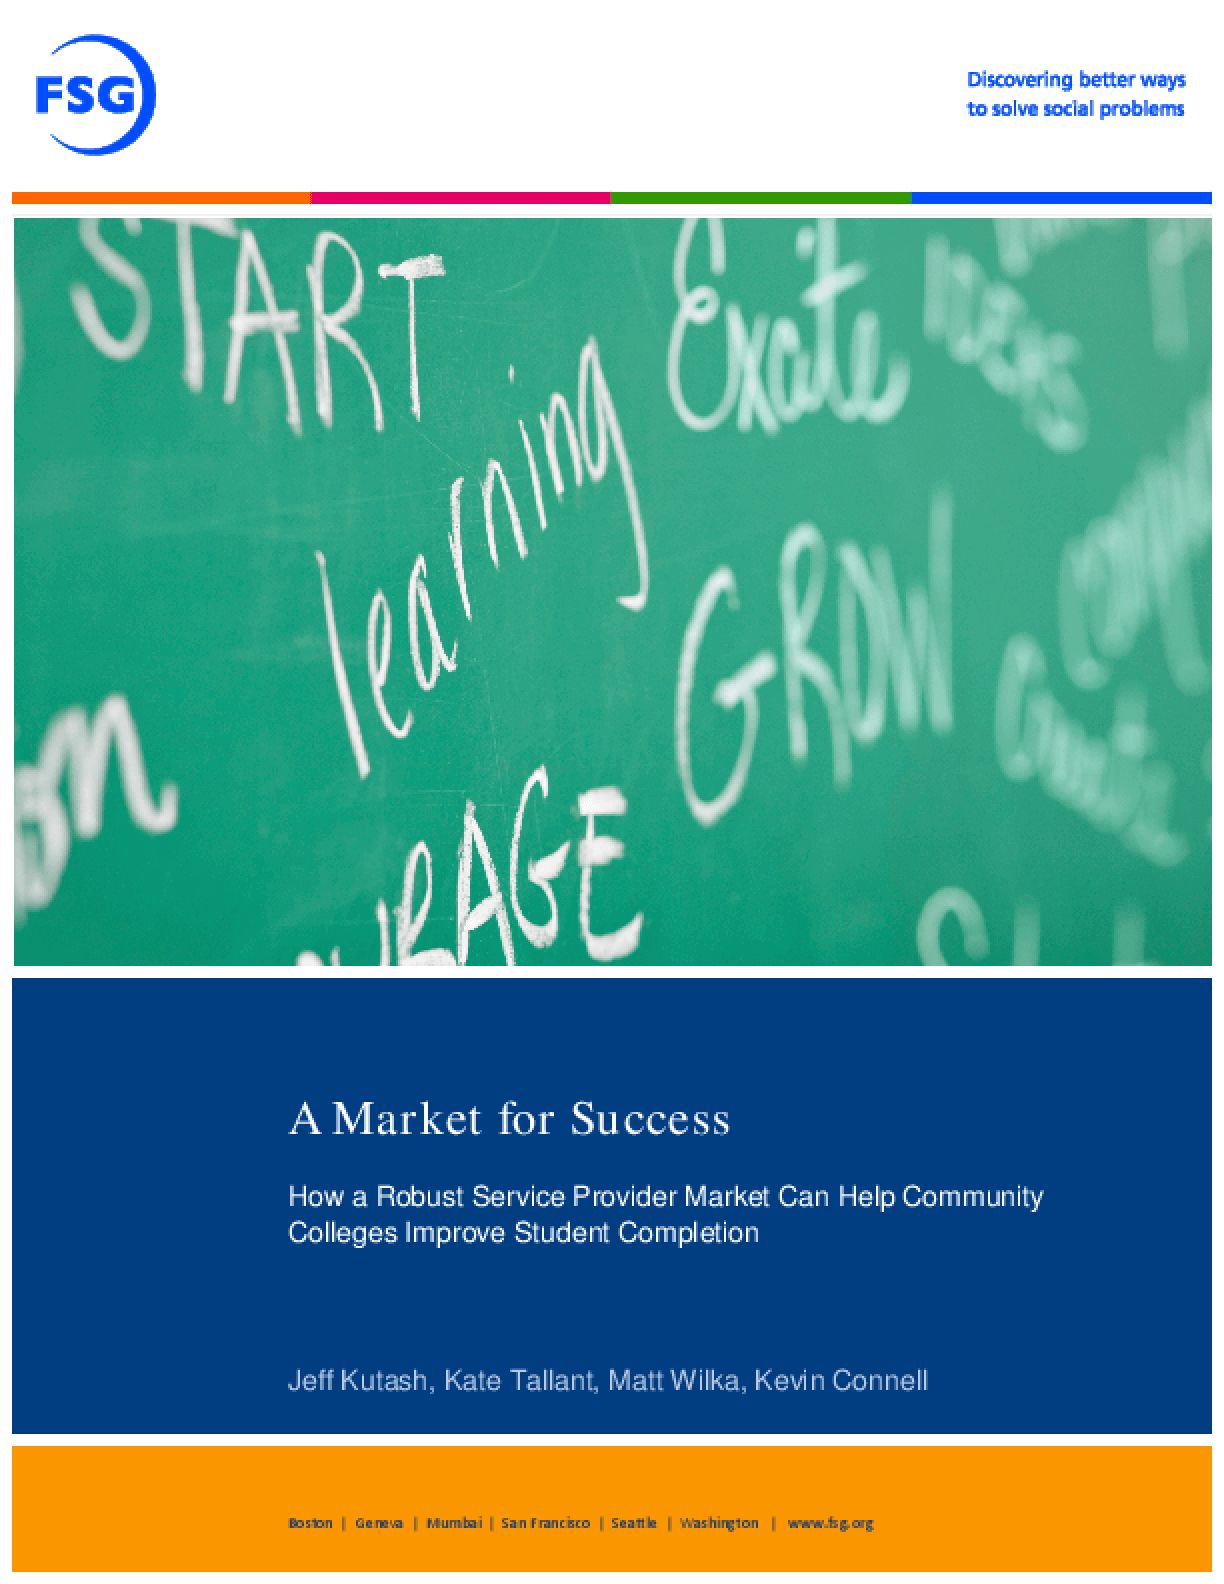 A Market for Success: How a Robust Service Provider Market Can Help Community Colleges Improve Student Completion